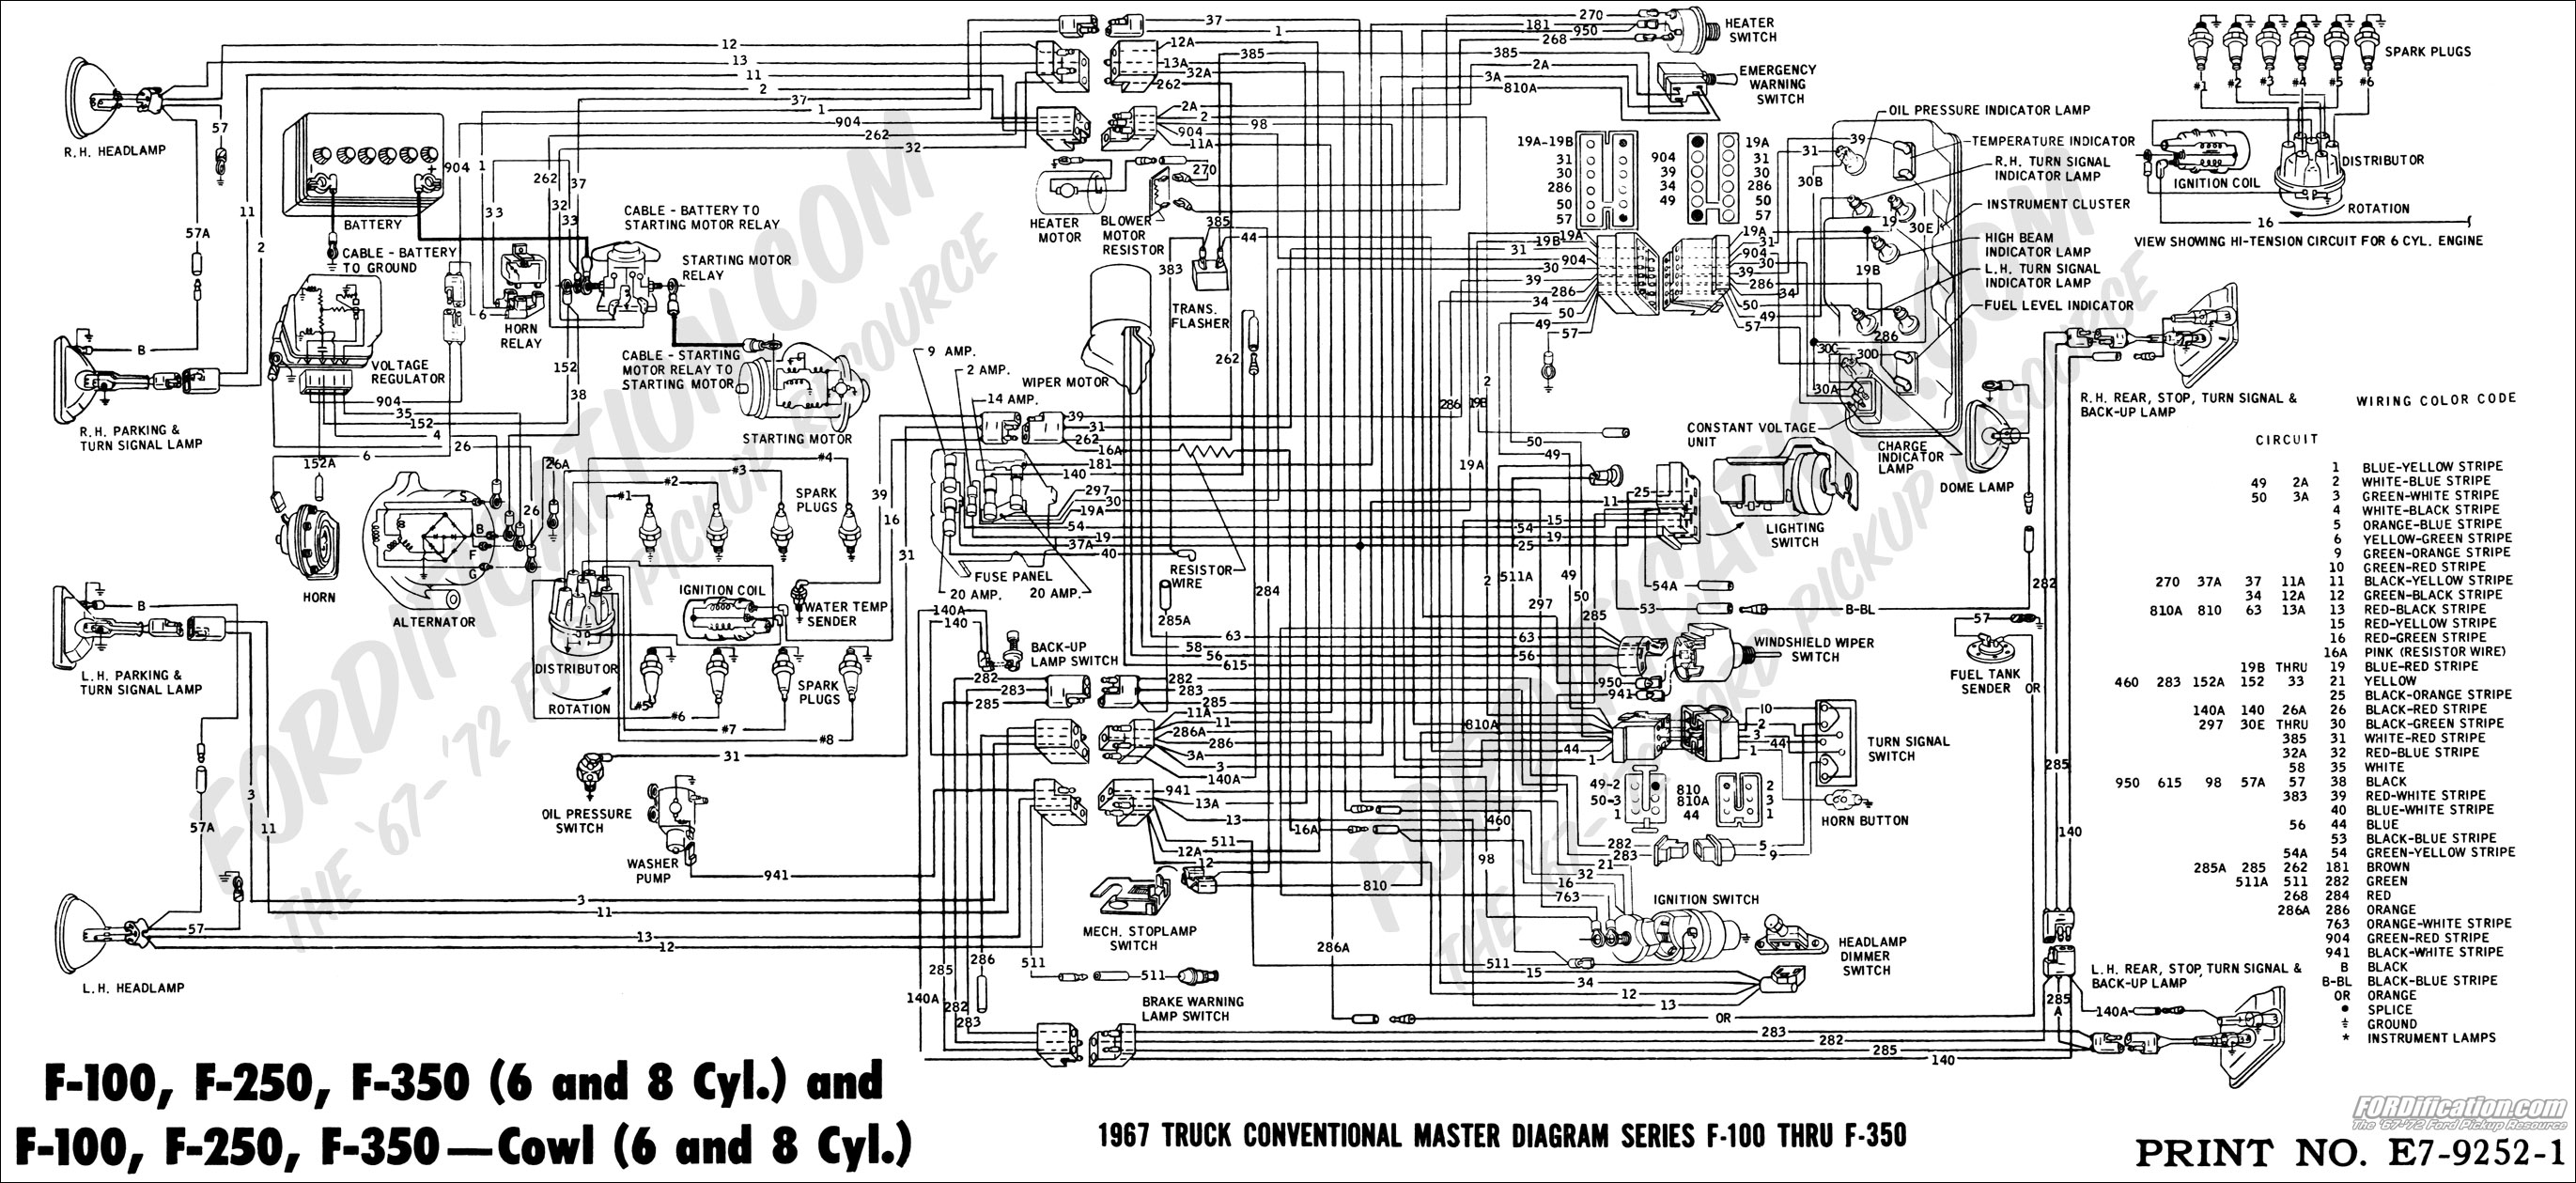 ford transmission wiring harness diagram ford truck technical drawings and schematics section h wiring 1967 master wiring diagram 1998 ford f150